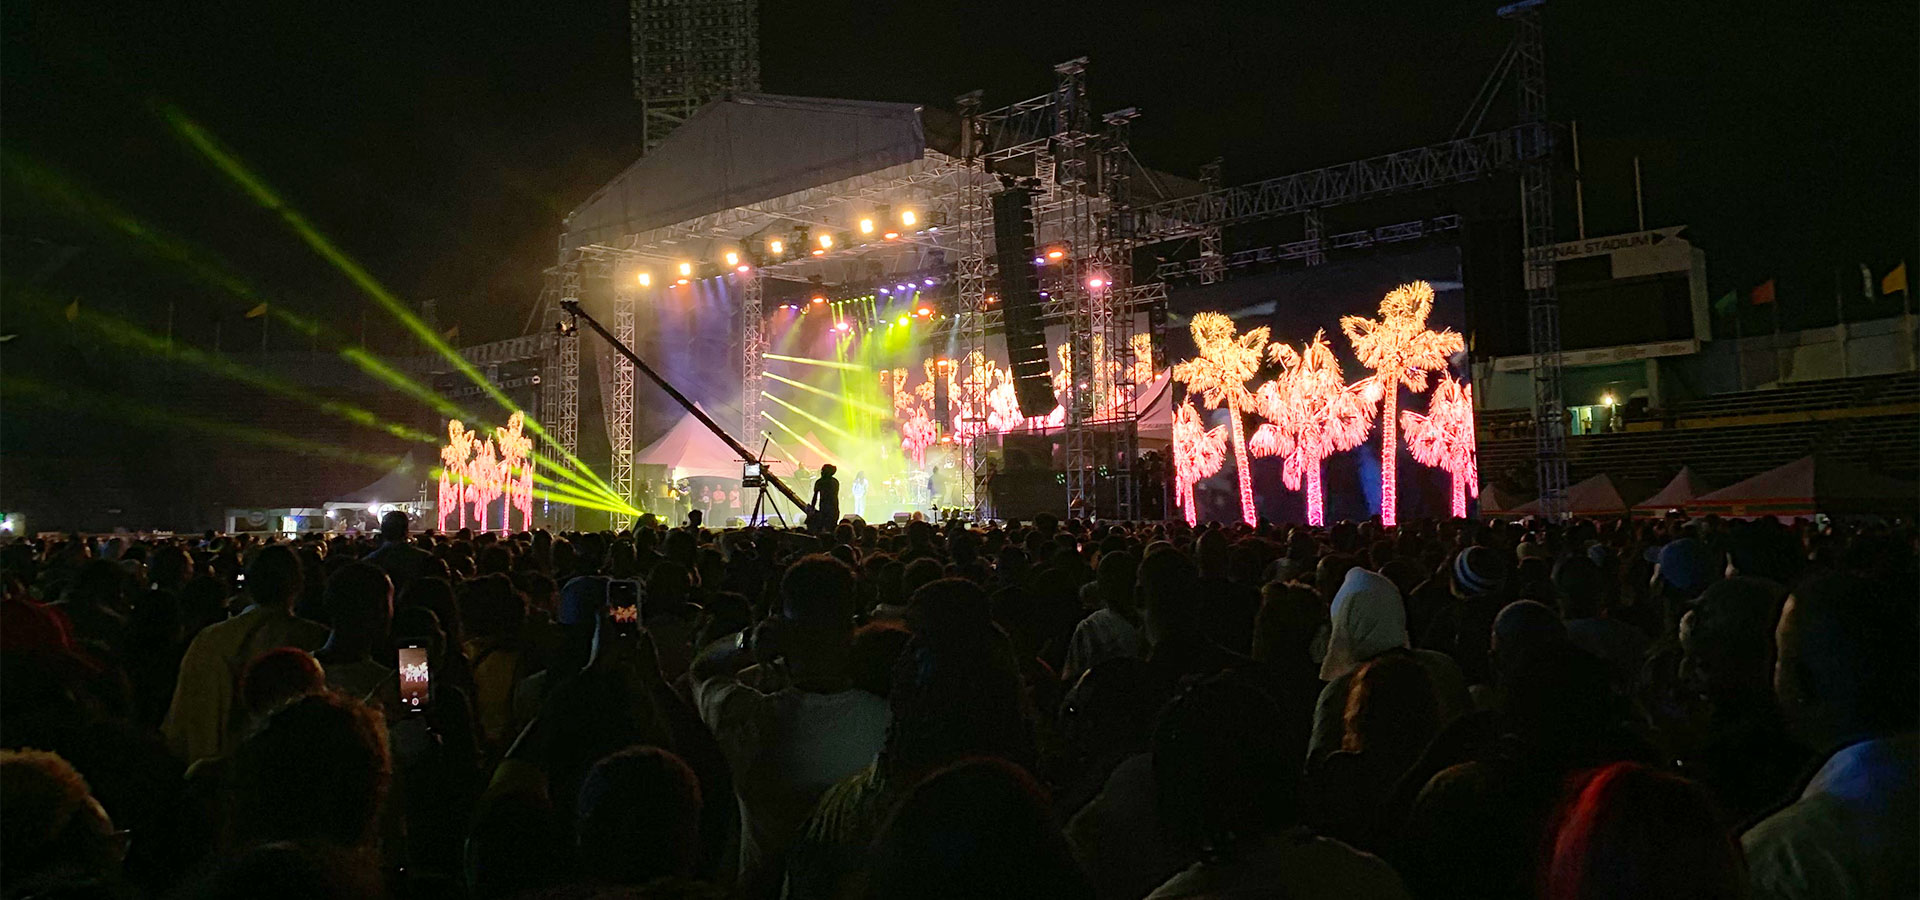 Offline Ticket Scanning Aids The Caribbean's Largest Festival